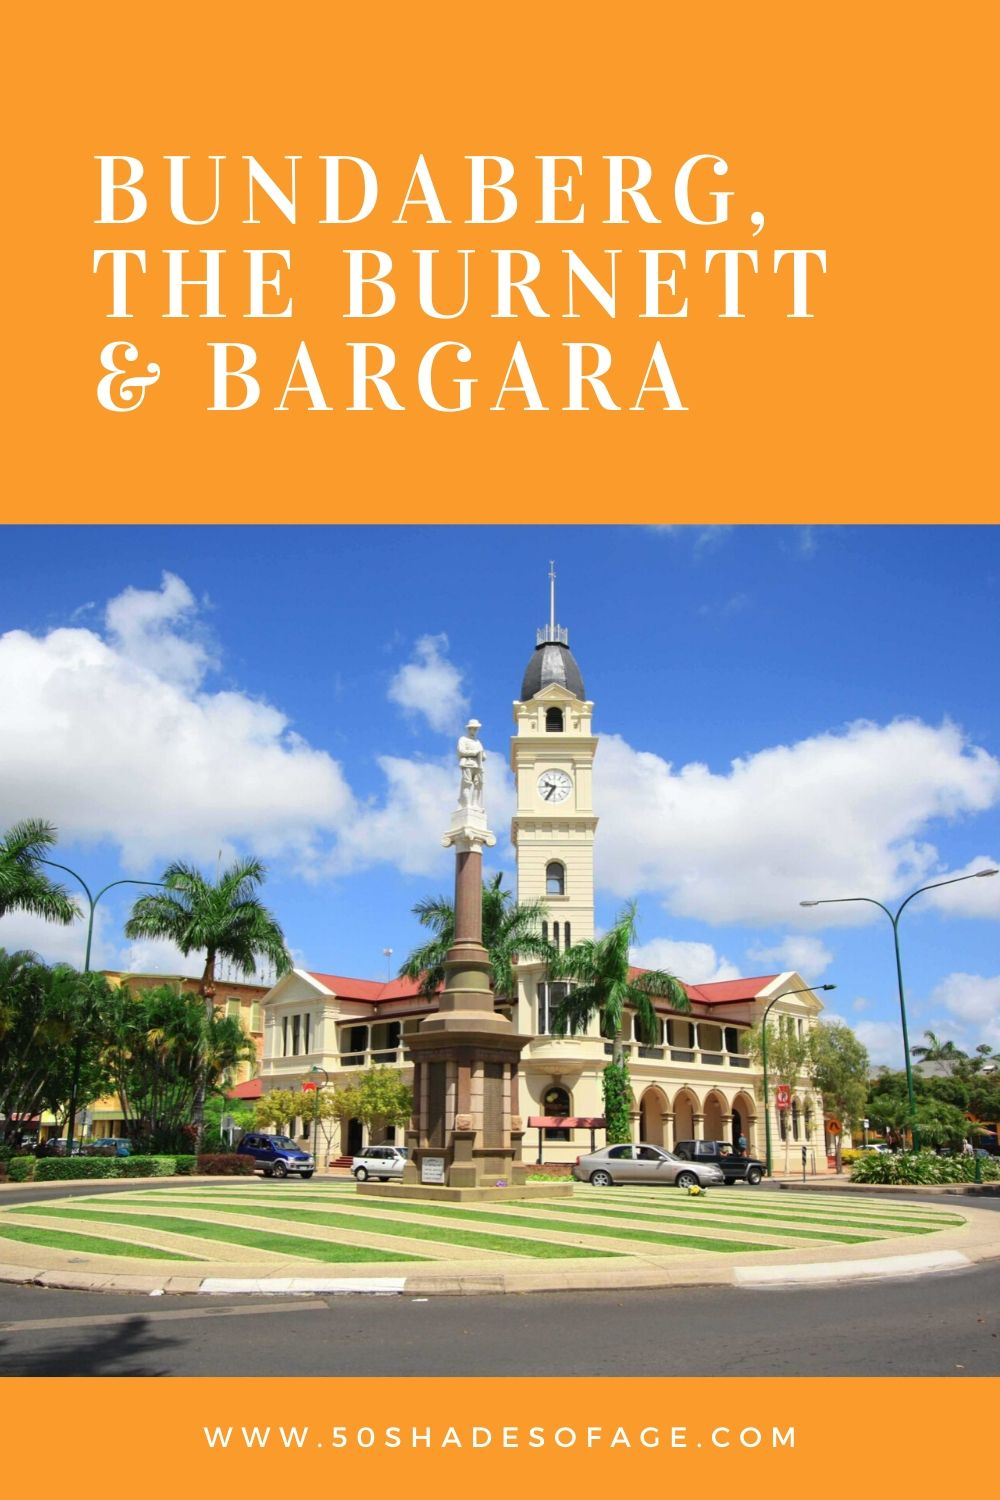 Bundaberg, The Burnett & Bargara